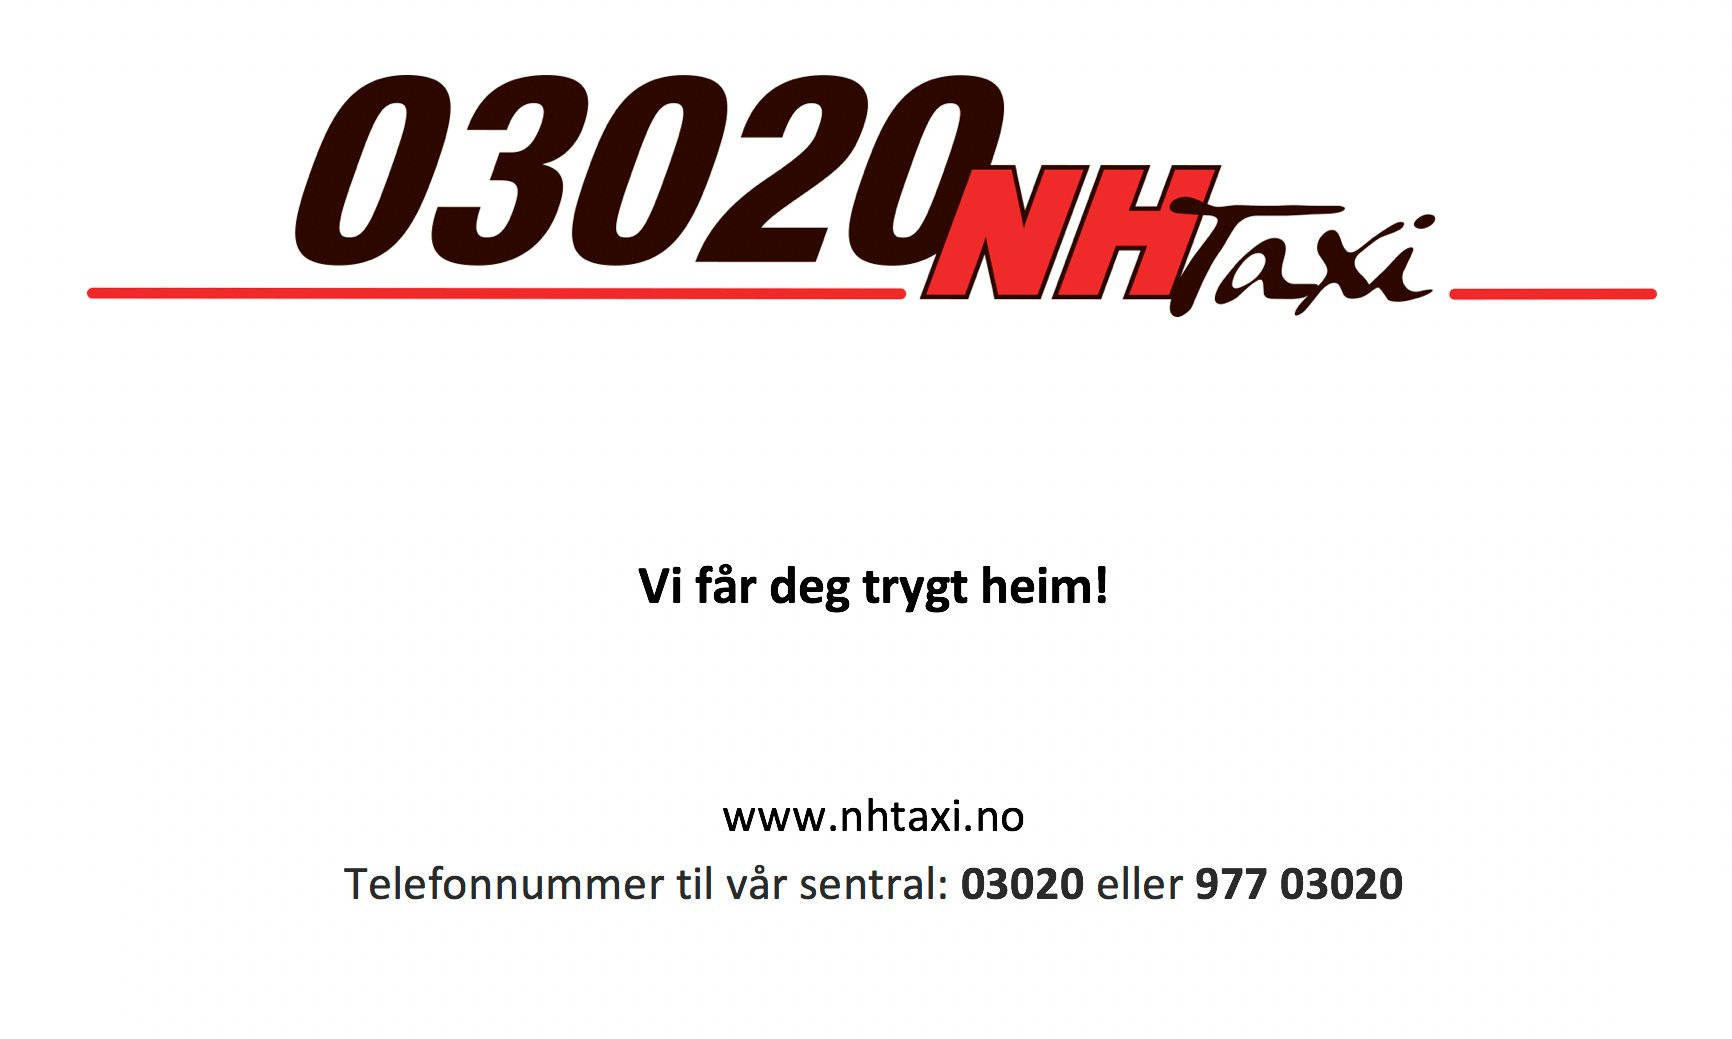 nhtaxi